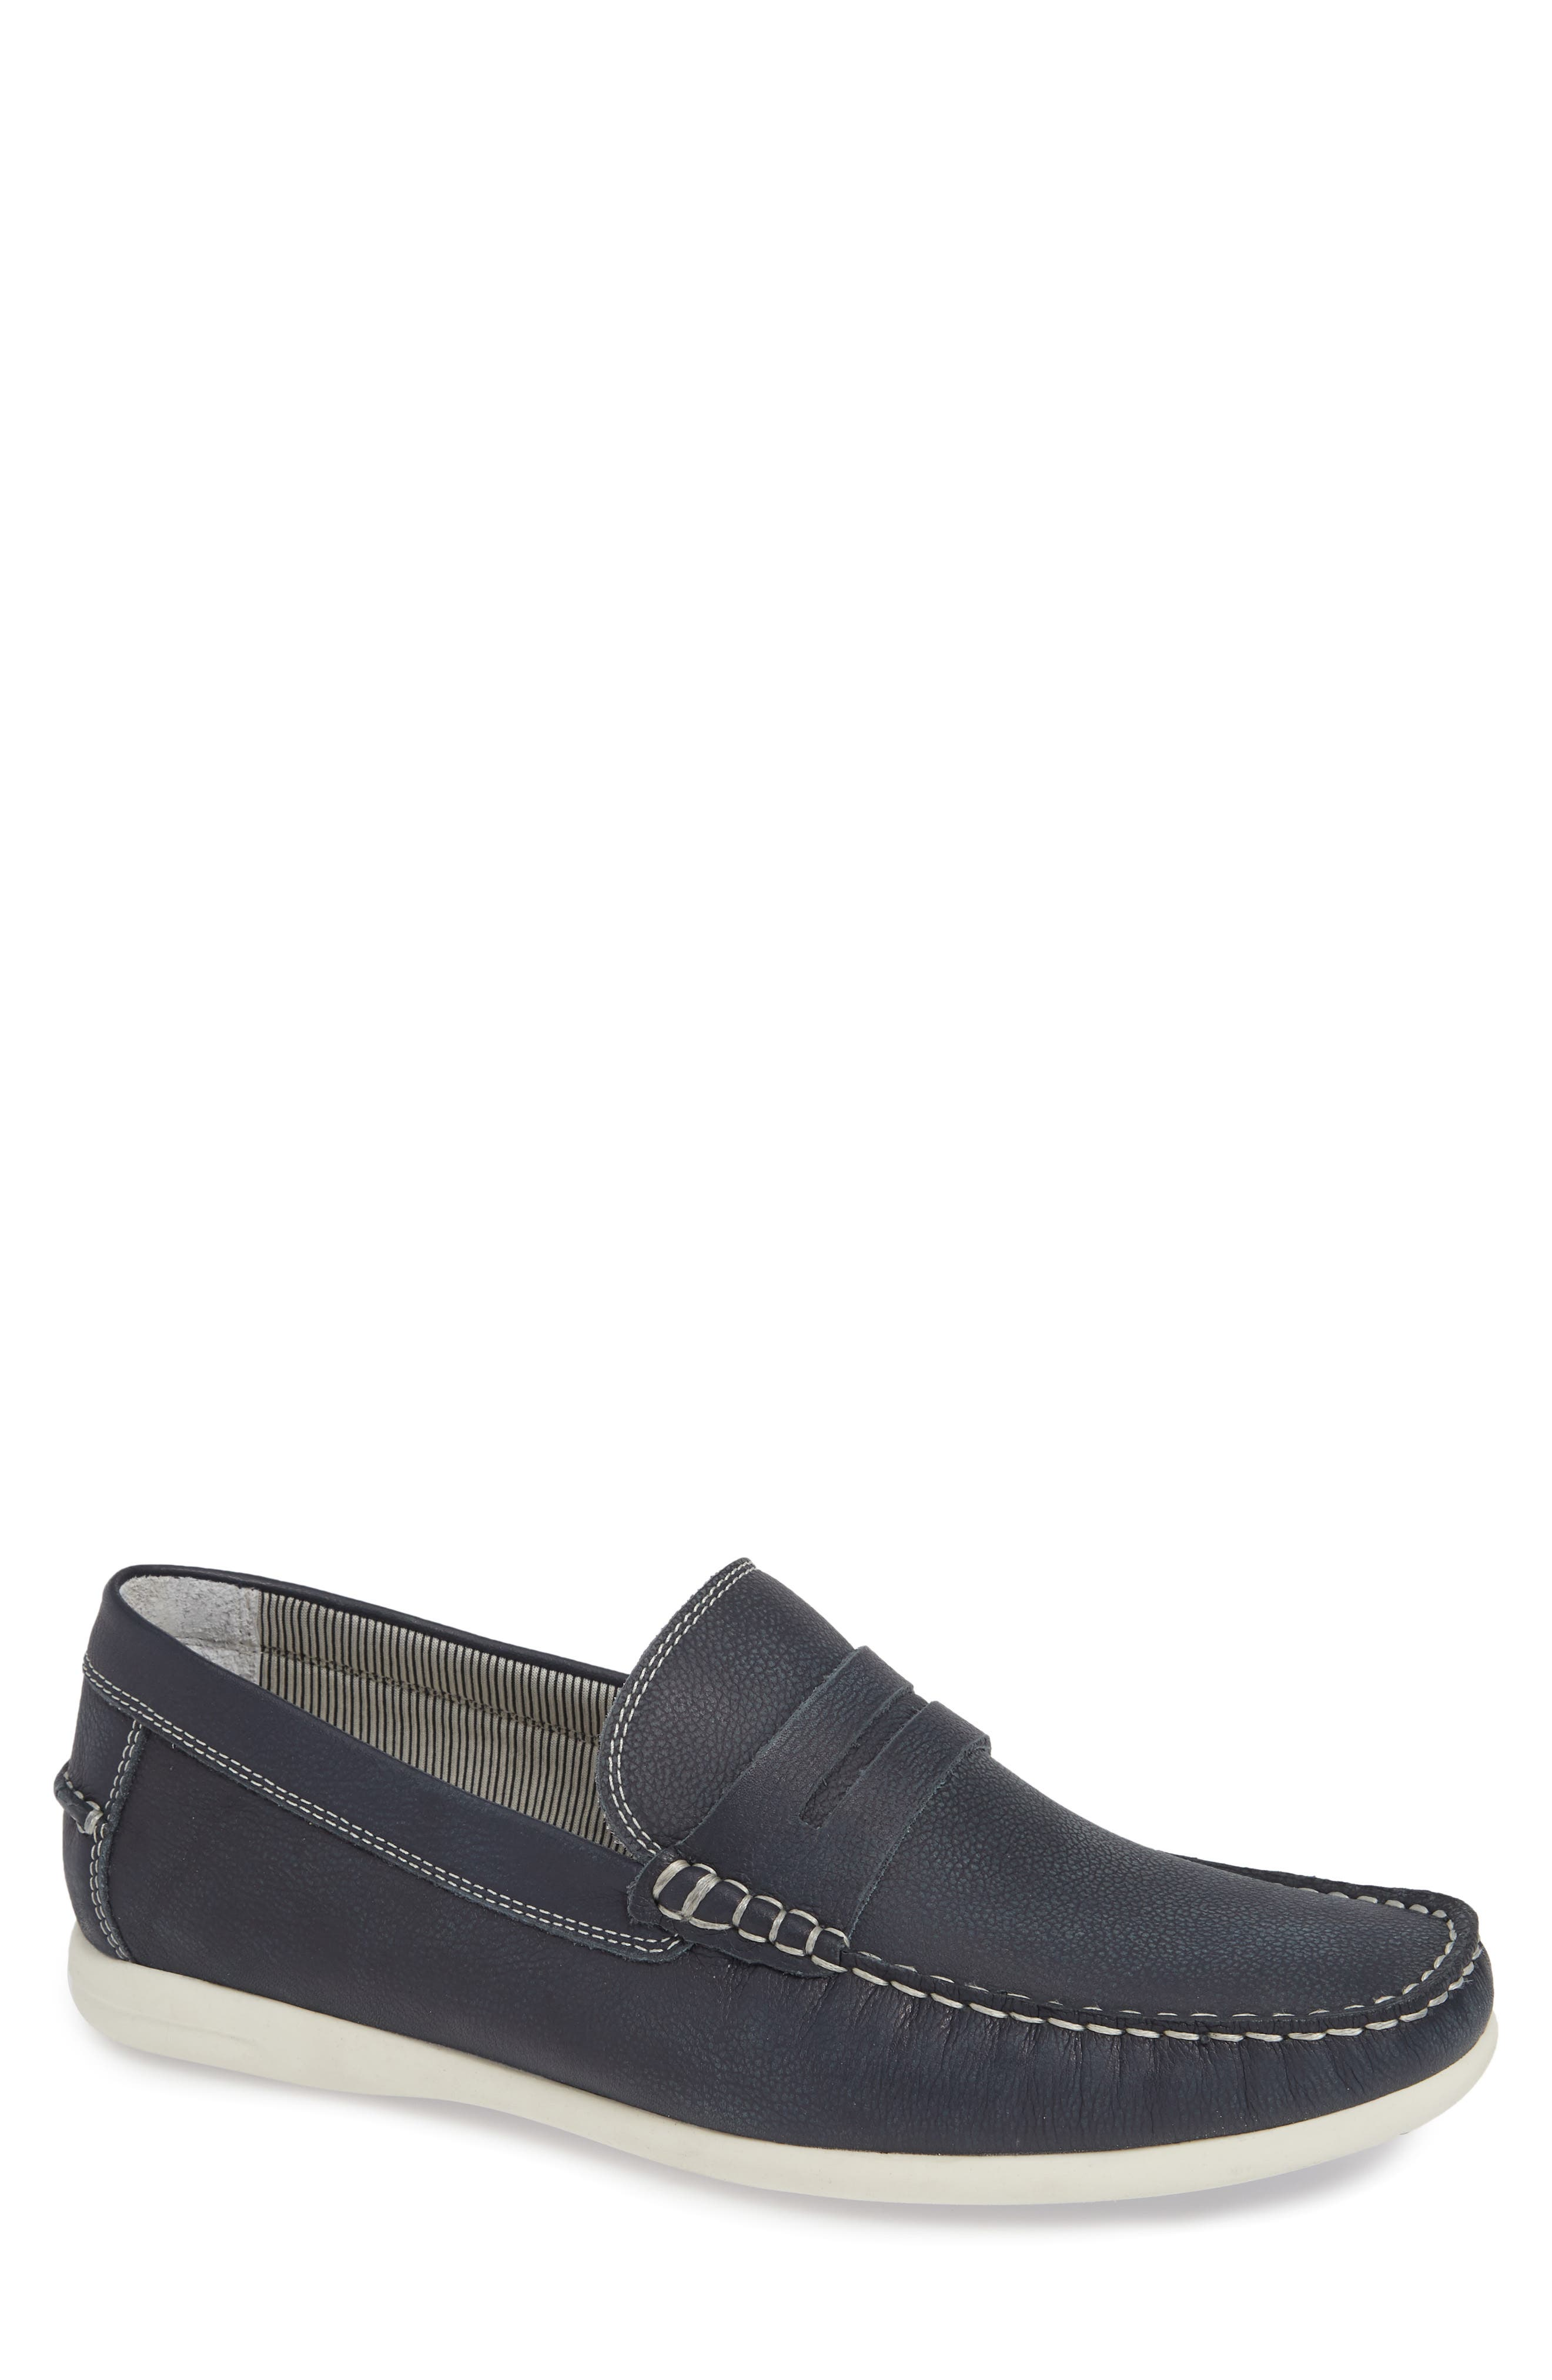 Napa Penny Loafer,                             Main thumbnail 1, color,                             NAVY LEATHER